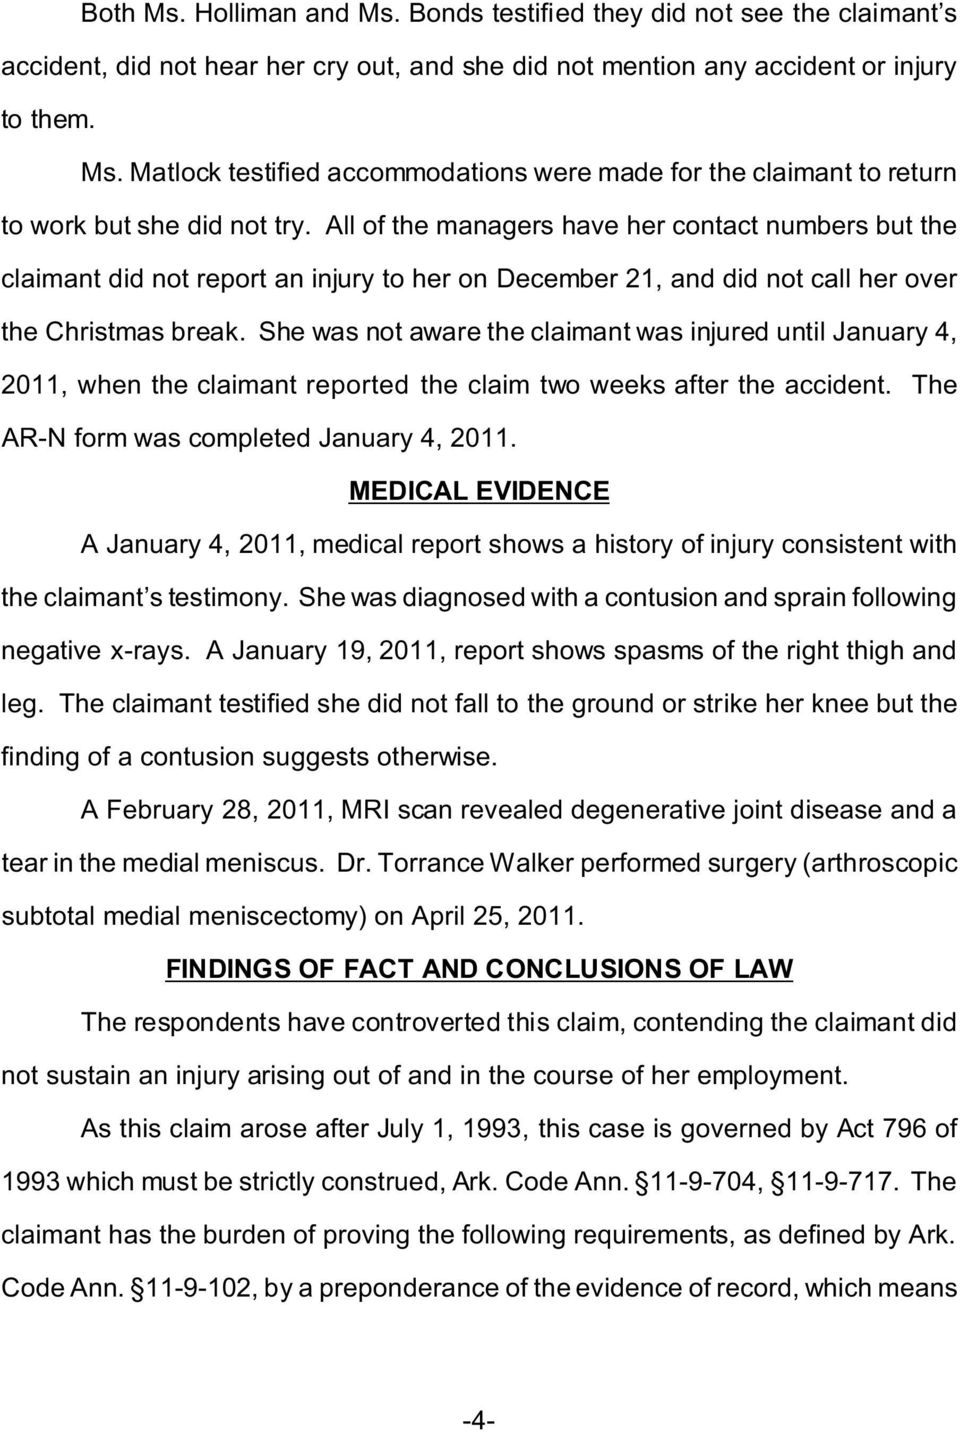 She was not aware the claimant was injured until January 4, 2011, when the claimant reported the claim two weeks after the accident. The AR-N form was completed January 4, 2011.